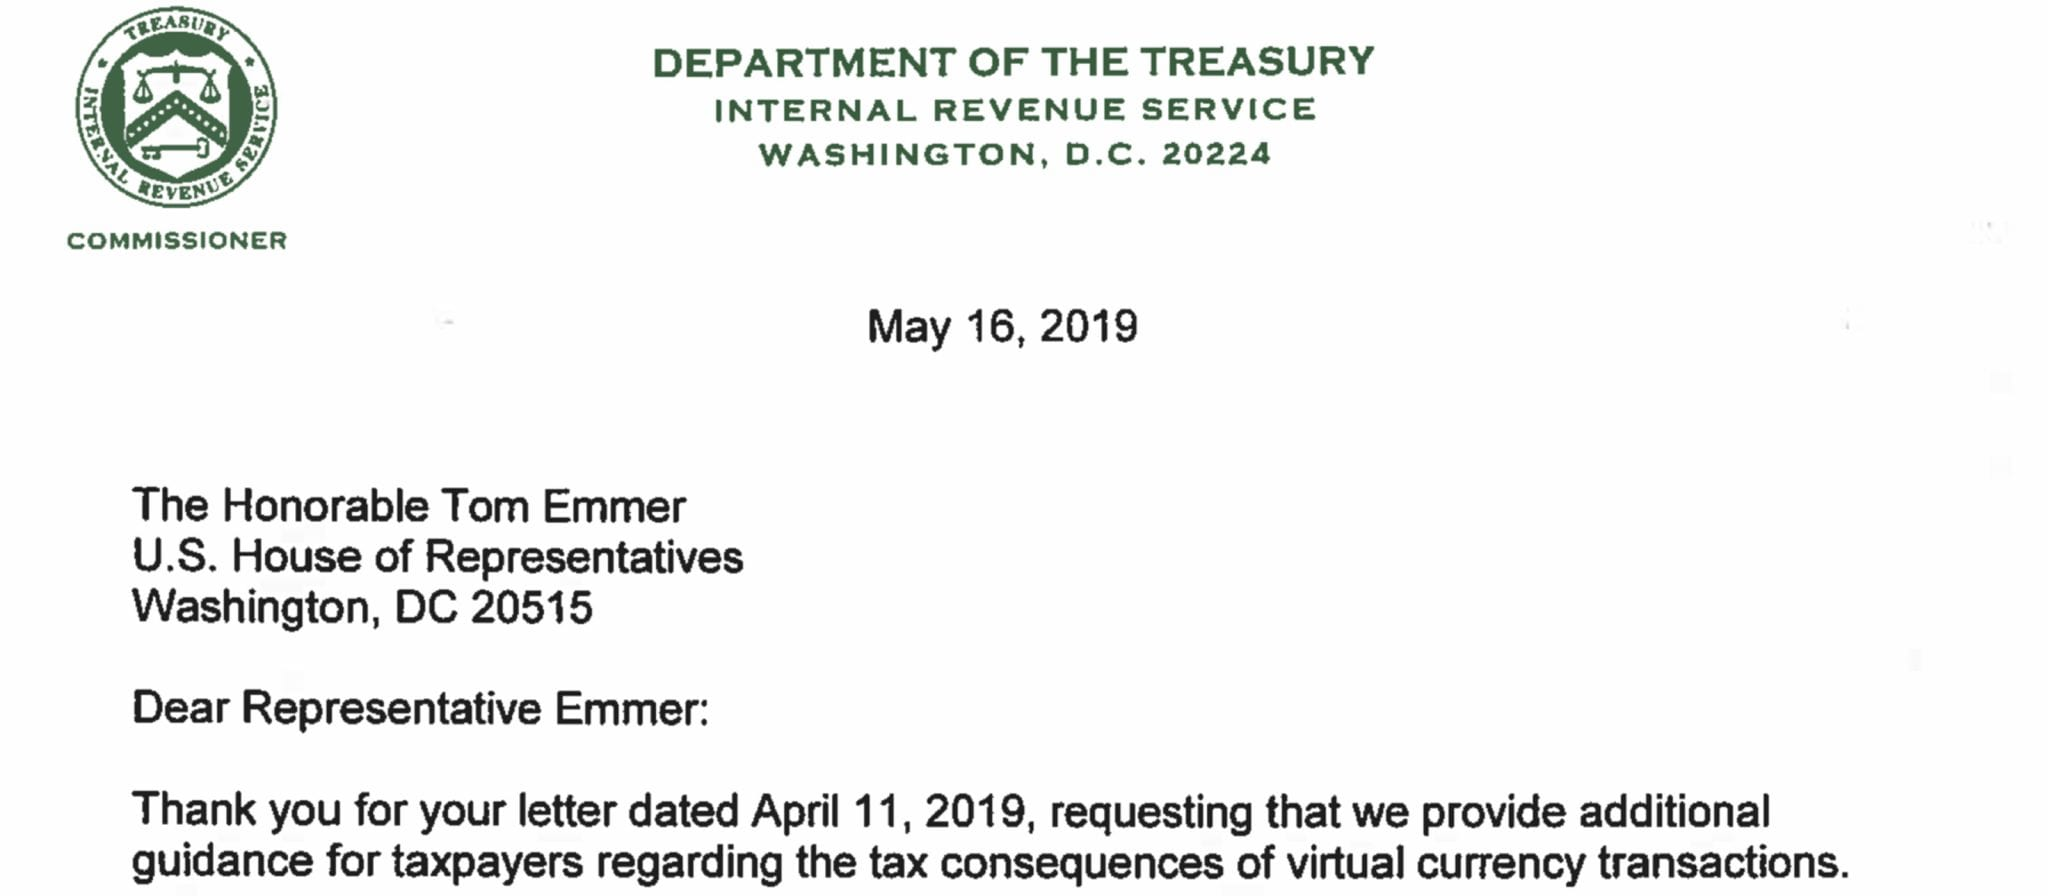 IRS Plans to Issue Guidance on Virtual Currency Taxation